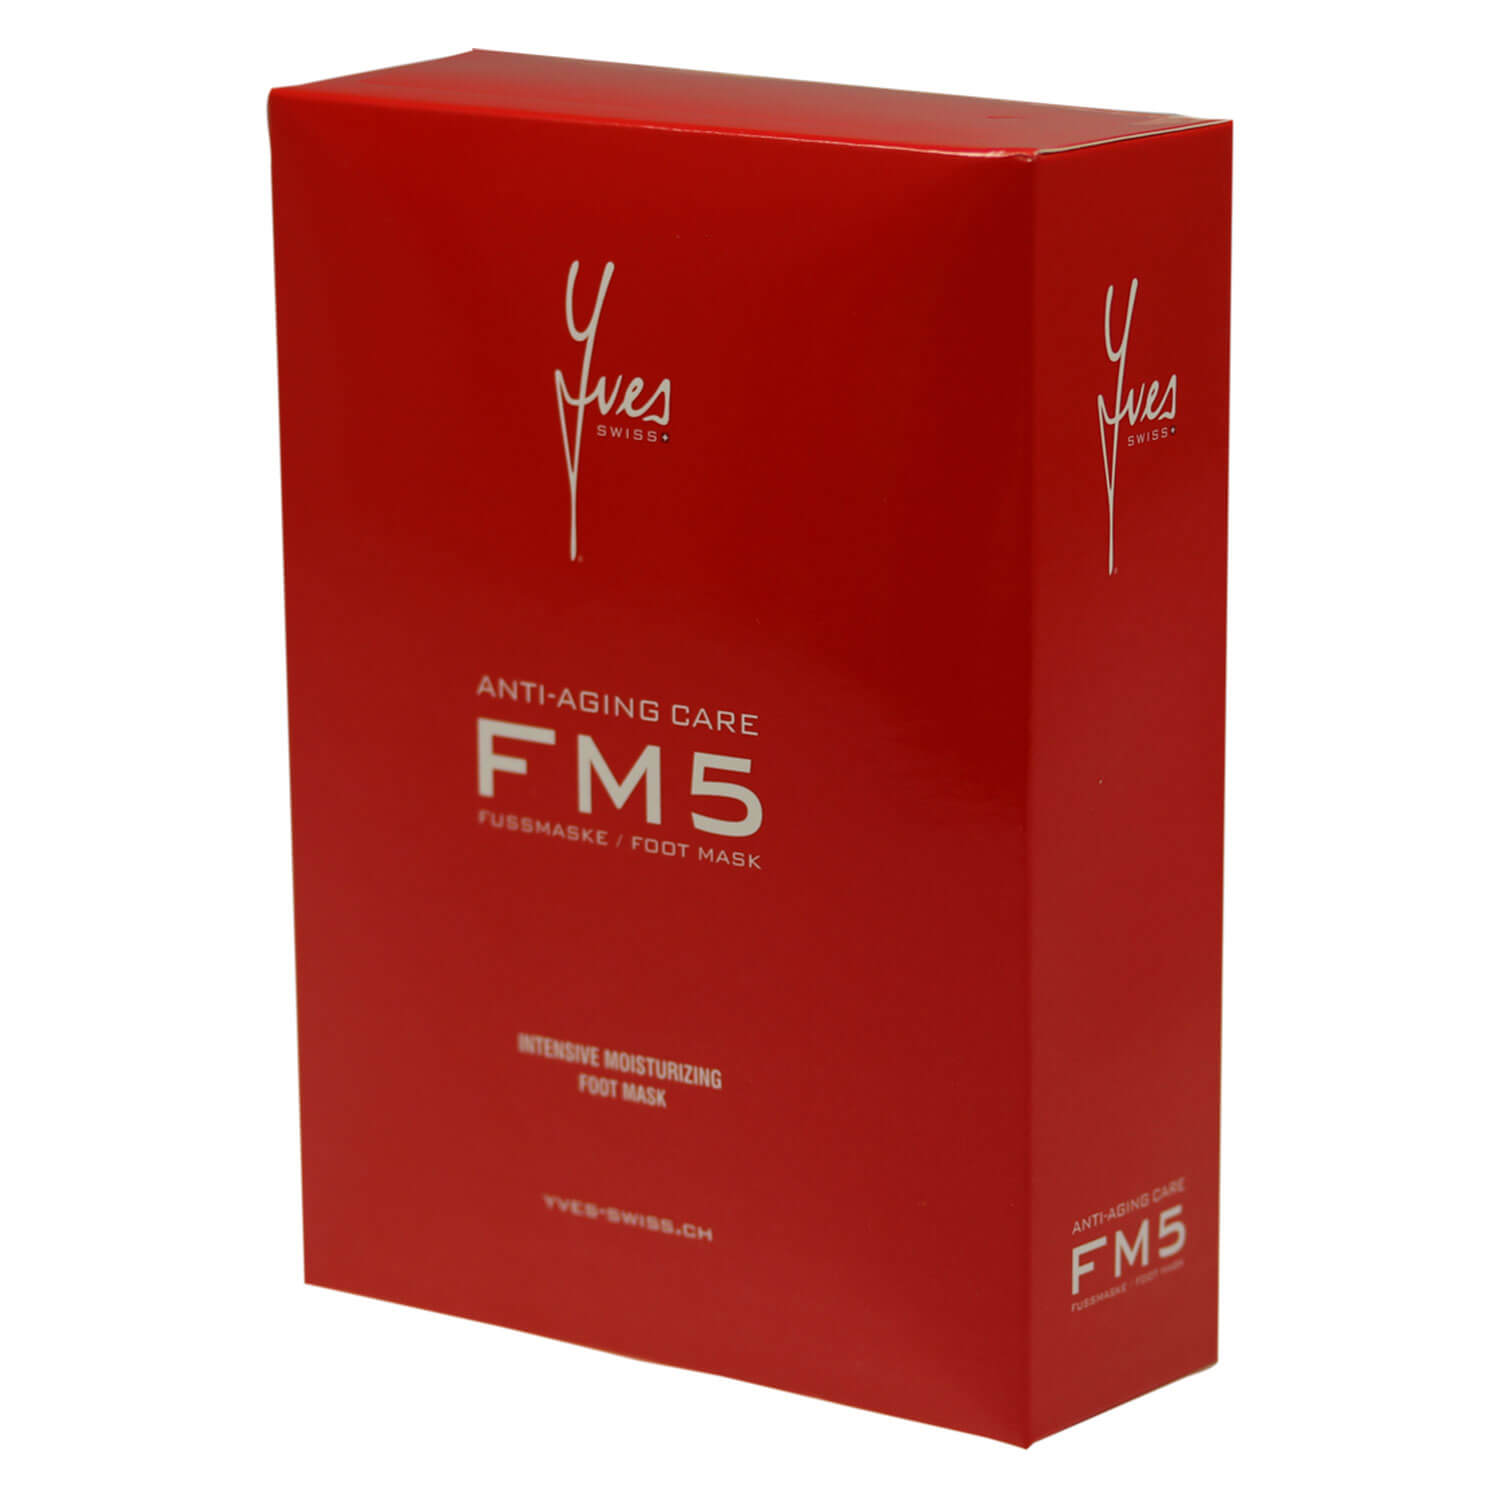 Yves Swiss - FM5 Foot Mask